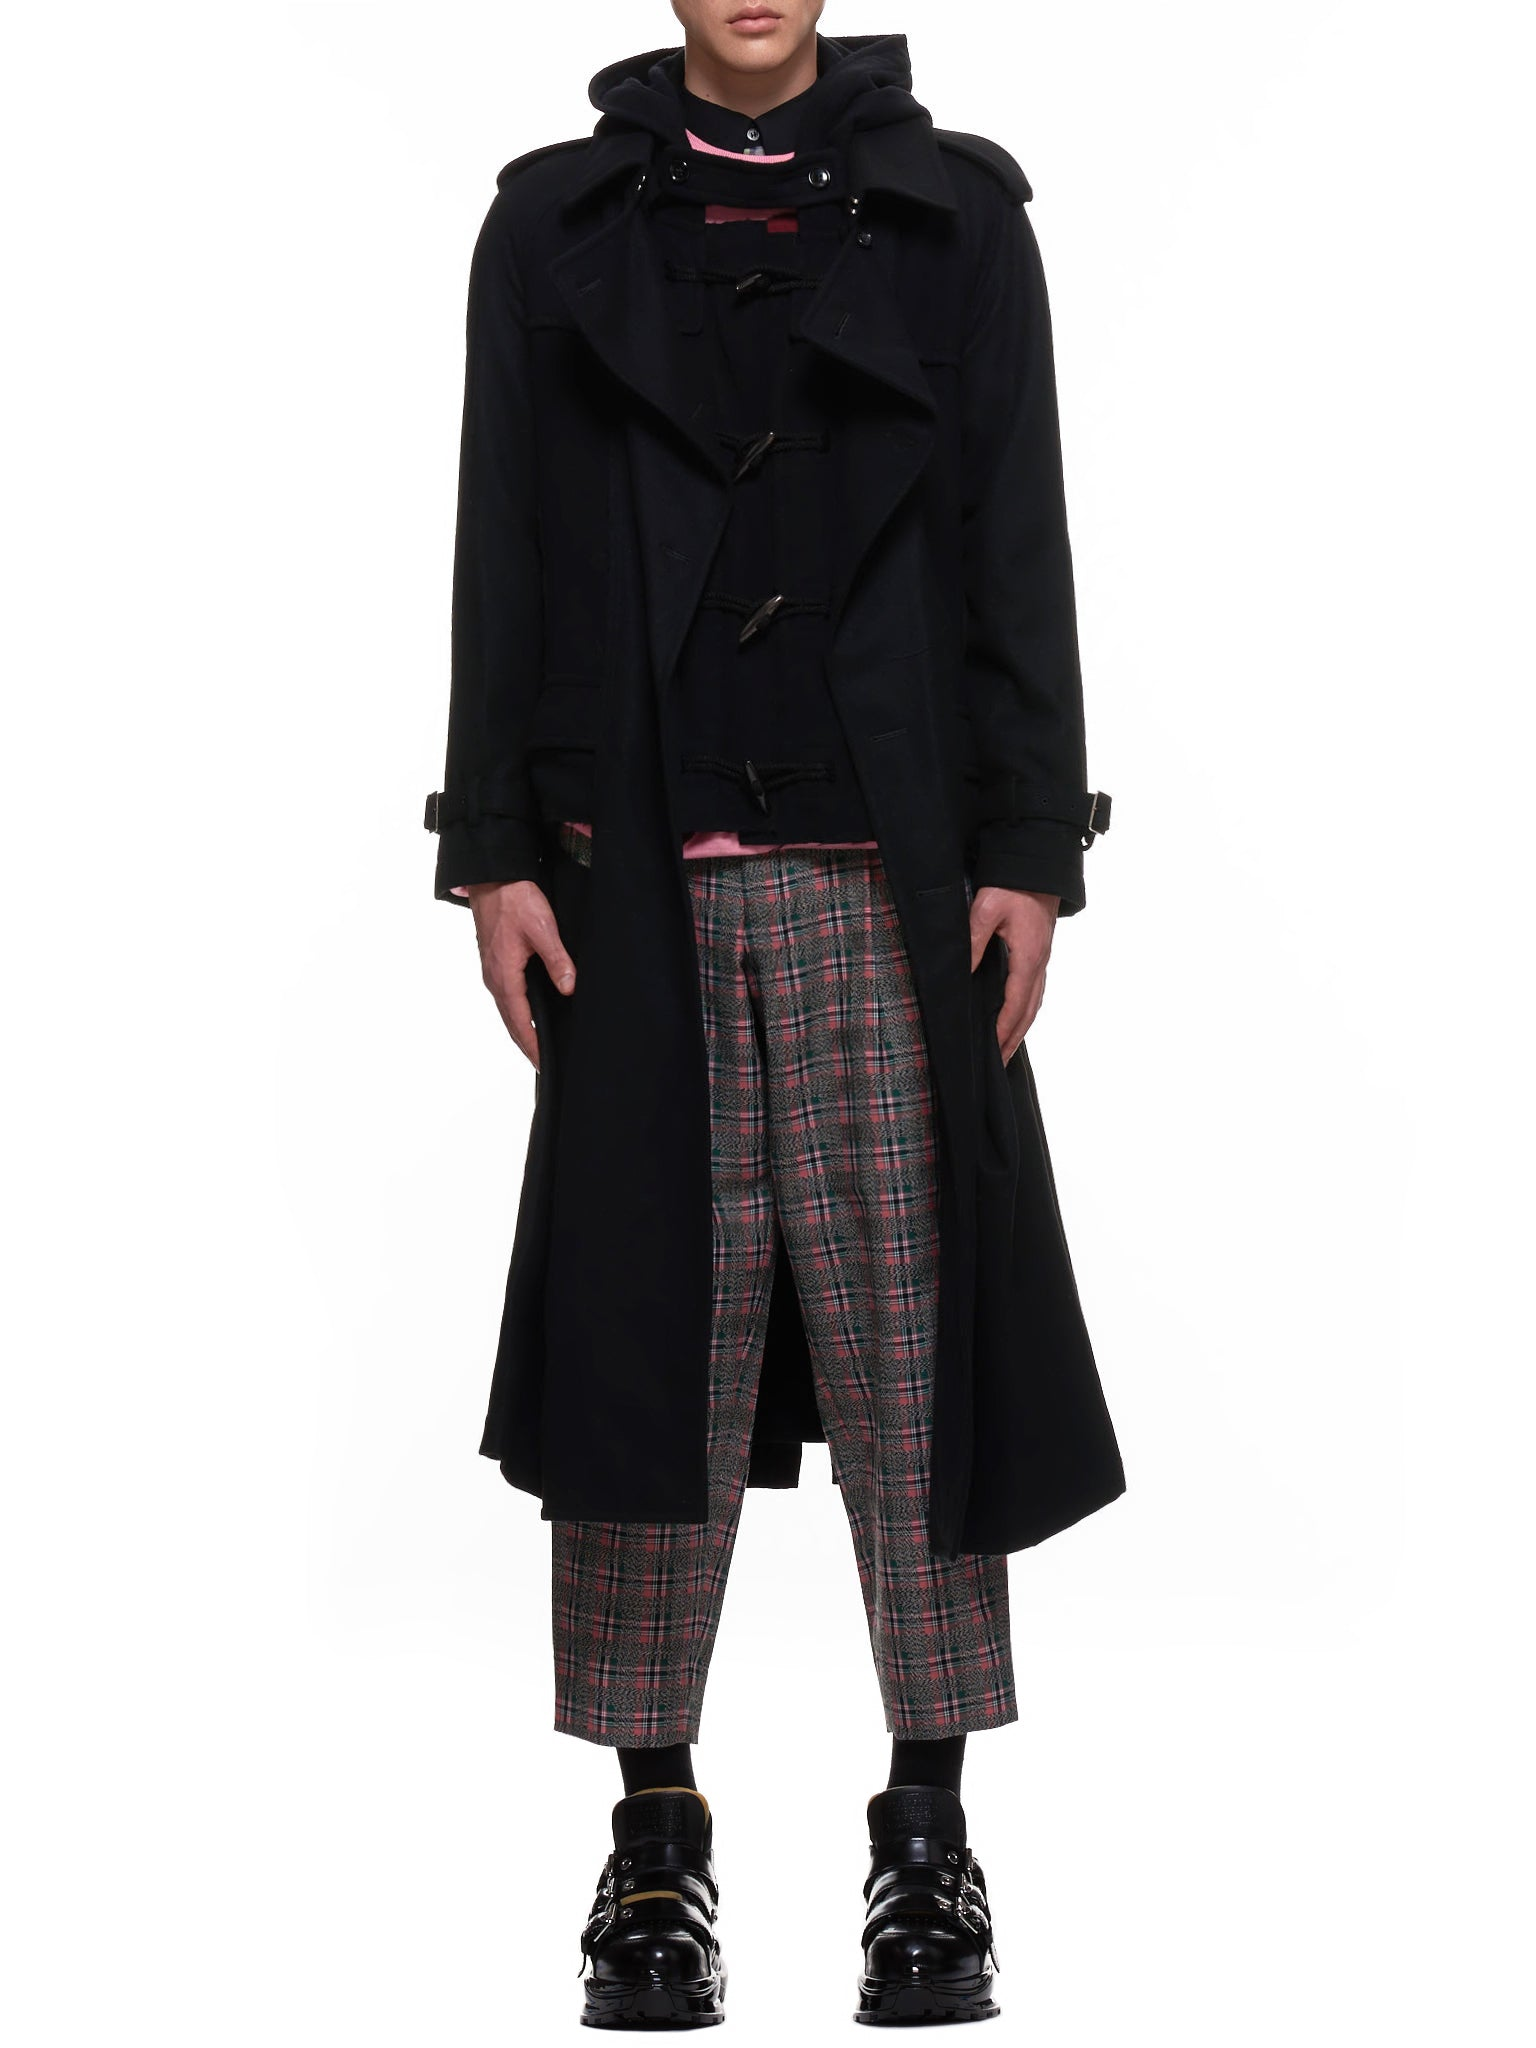 Cut-Out Duffle Coat (PF-C003-051-BLACK-BLACK)